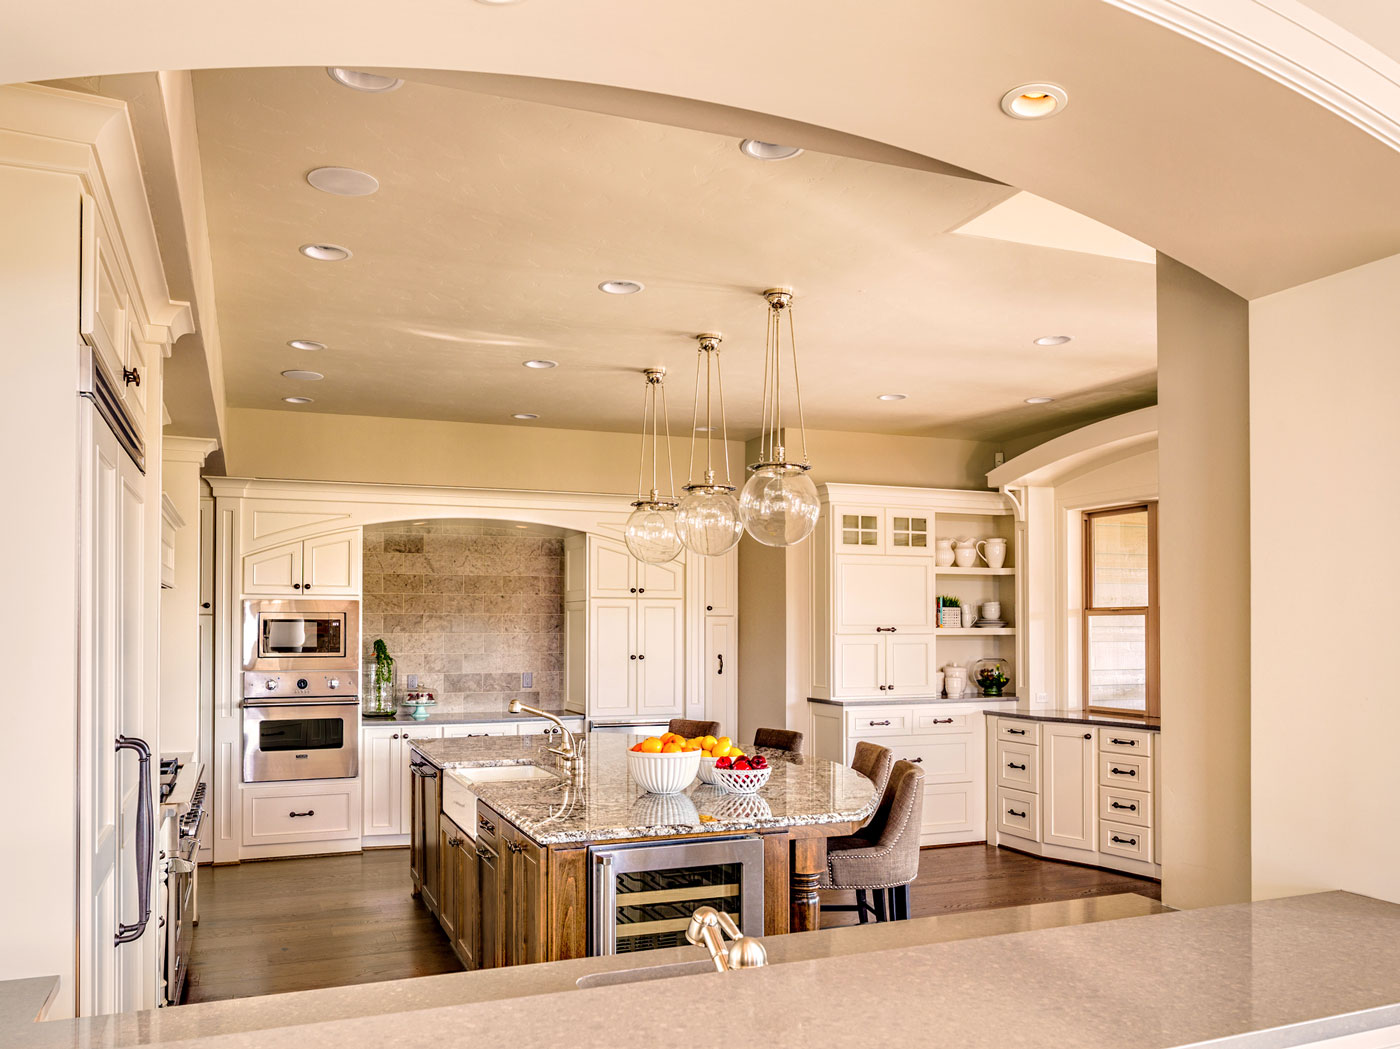 Custom White Marble Kitchen Remodel - Craftworks Custom Cabinetry - Rochester, NY